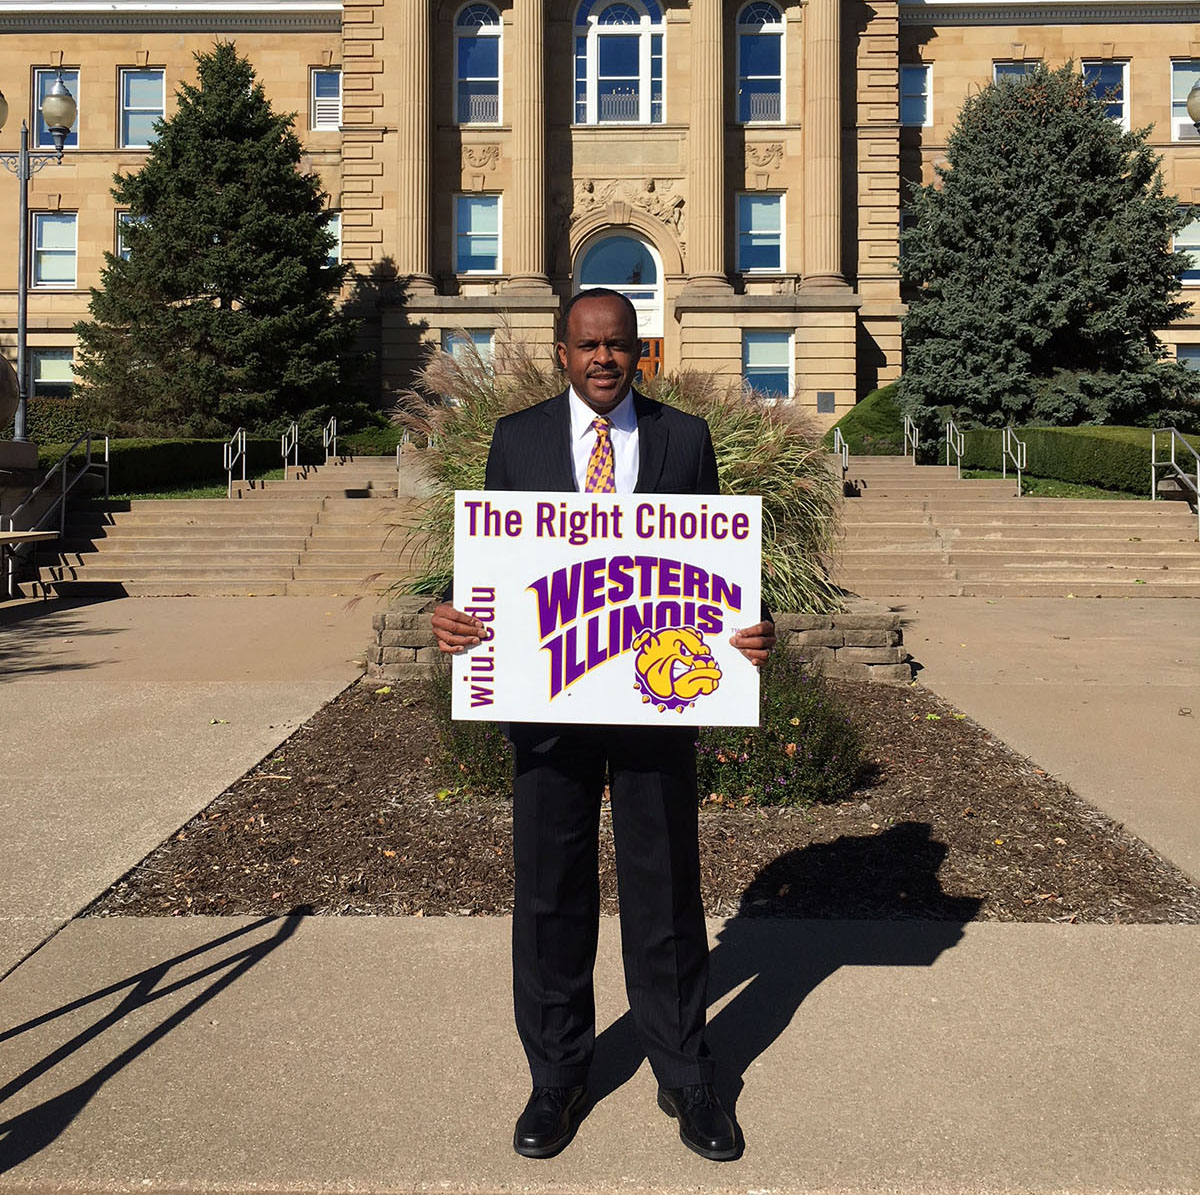 Western Illinois University president Jack Thomas advocates The Right Choice campaign through one of the many signs are posted throughout the Macomb campus and other parts of Illinois and Missouri.